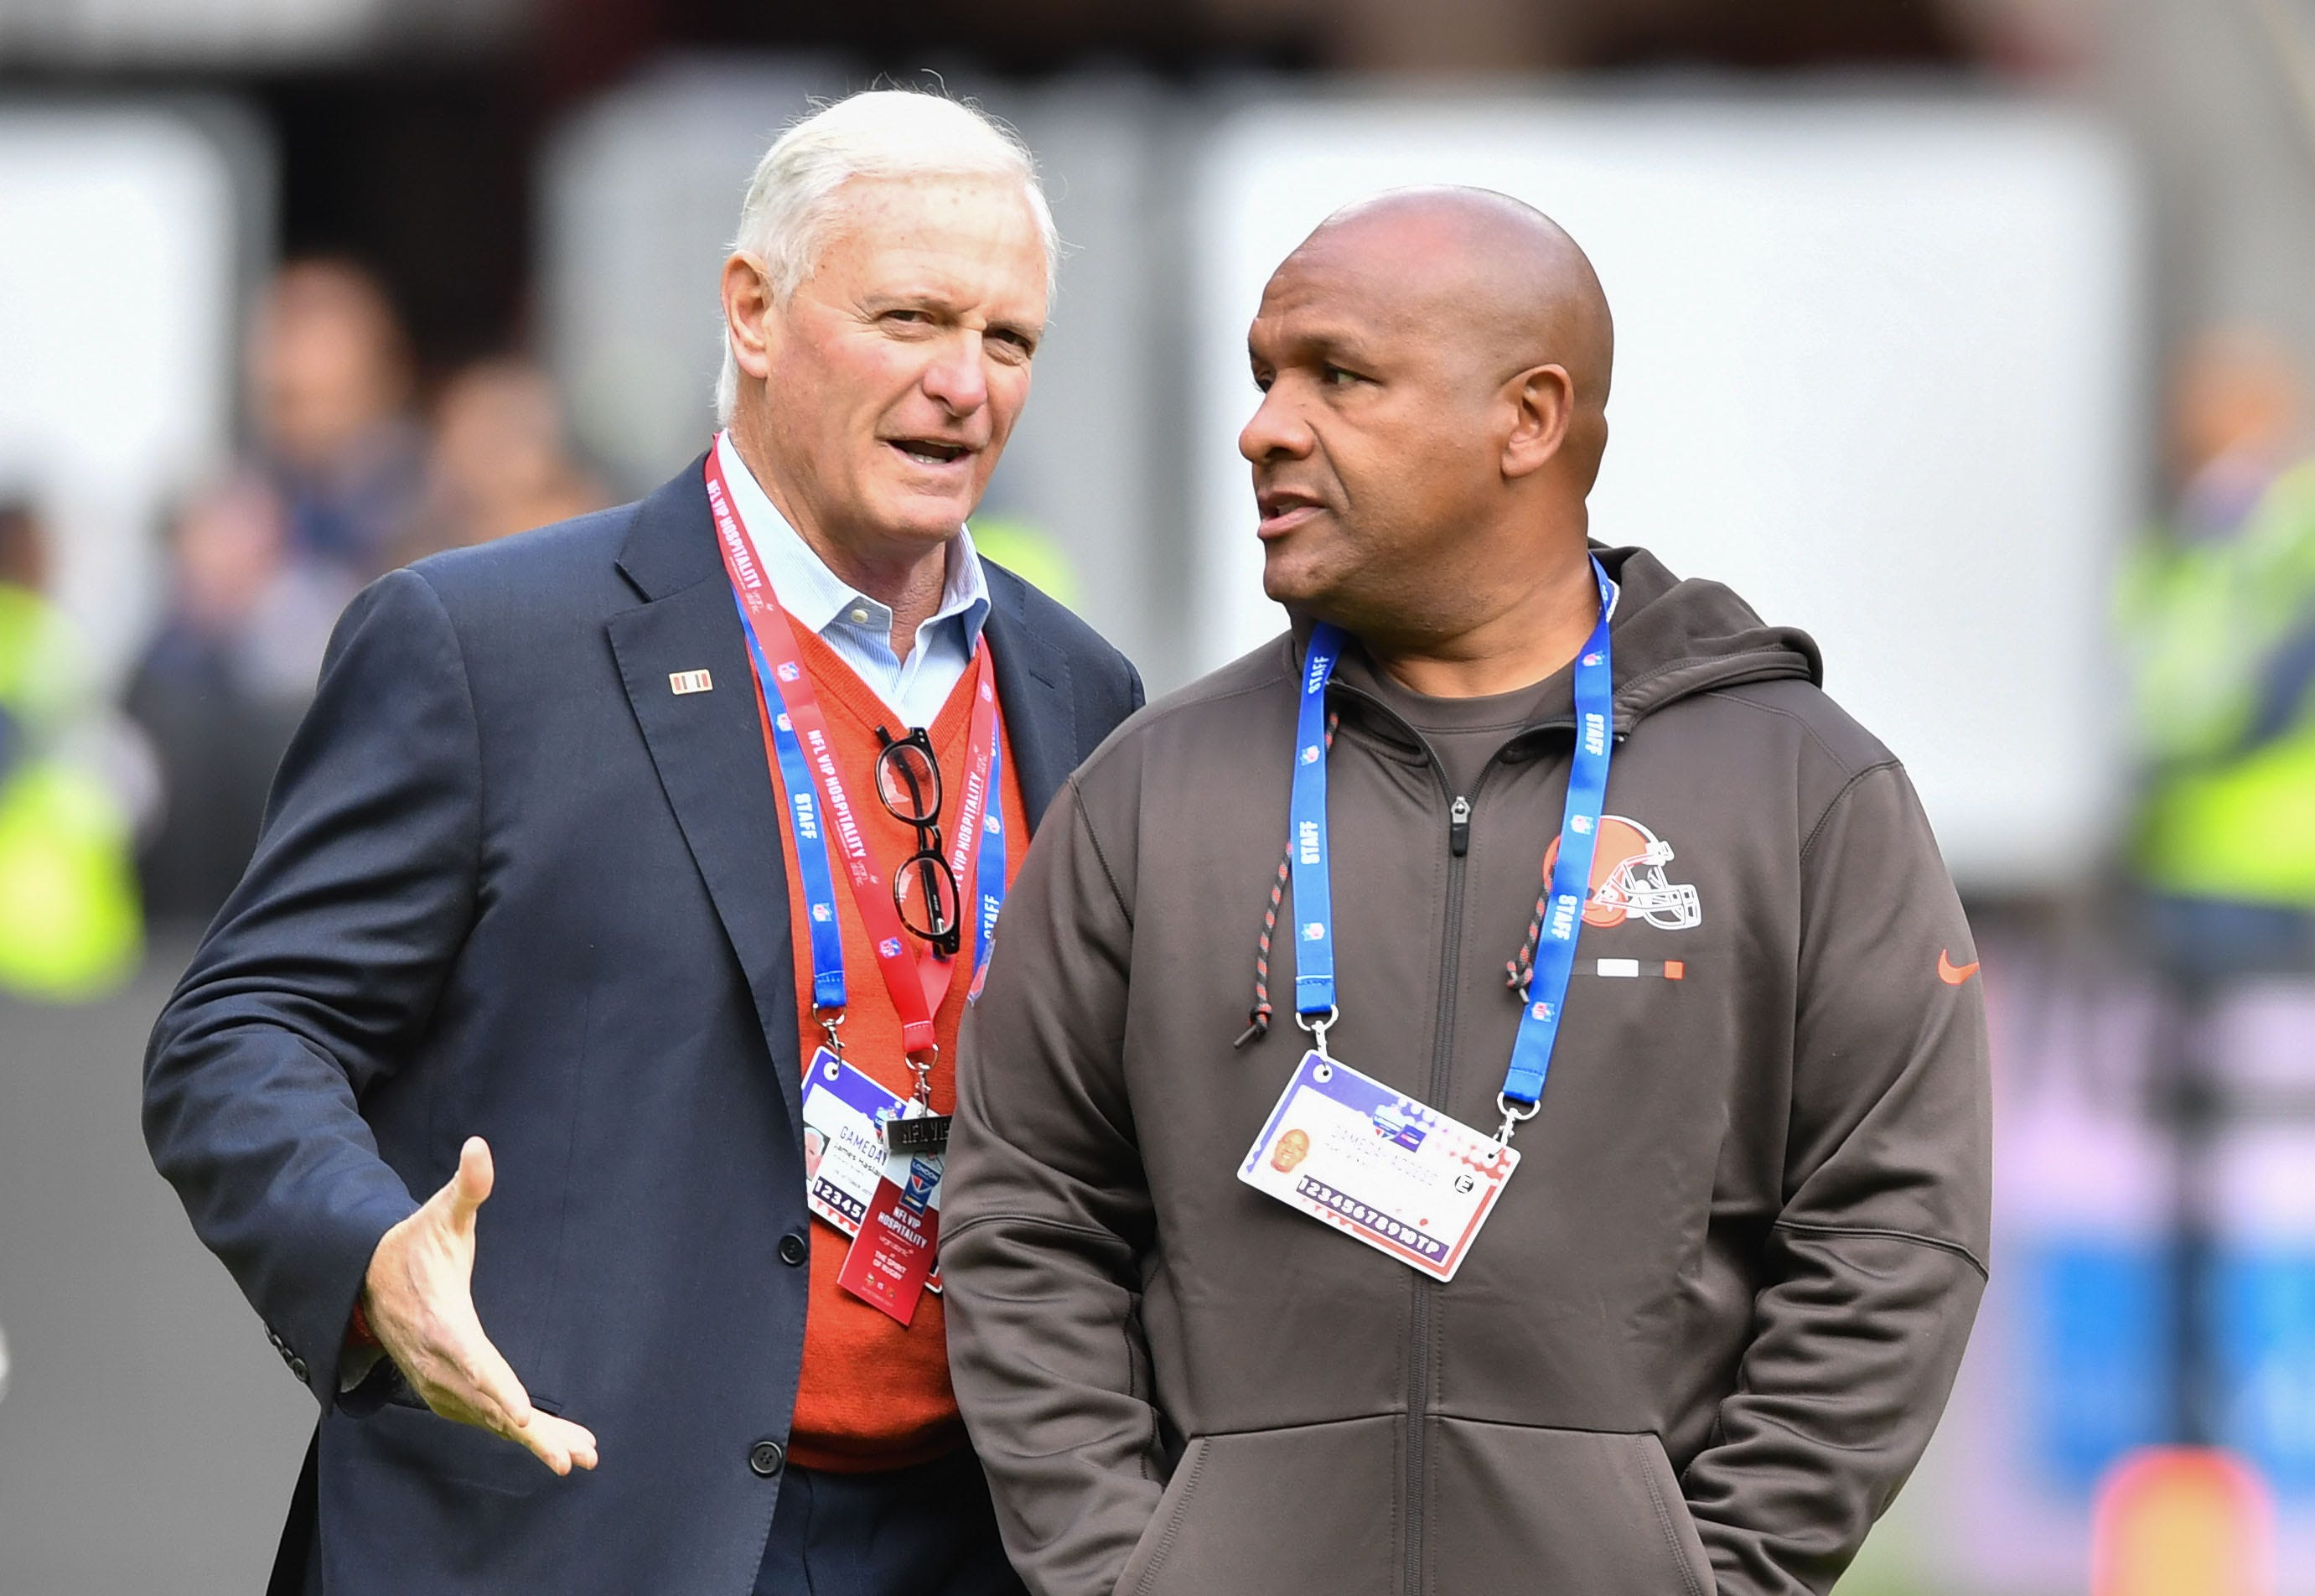 Espn Report Cleveland Browns Owner Jimmy Haslam Root Of Team S Issues